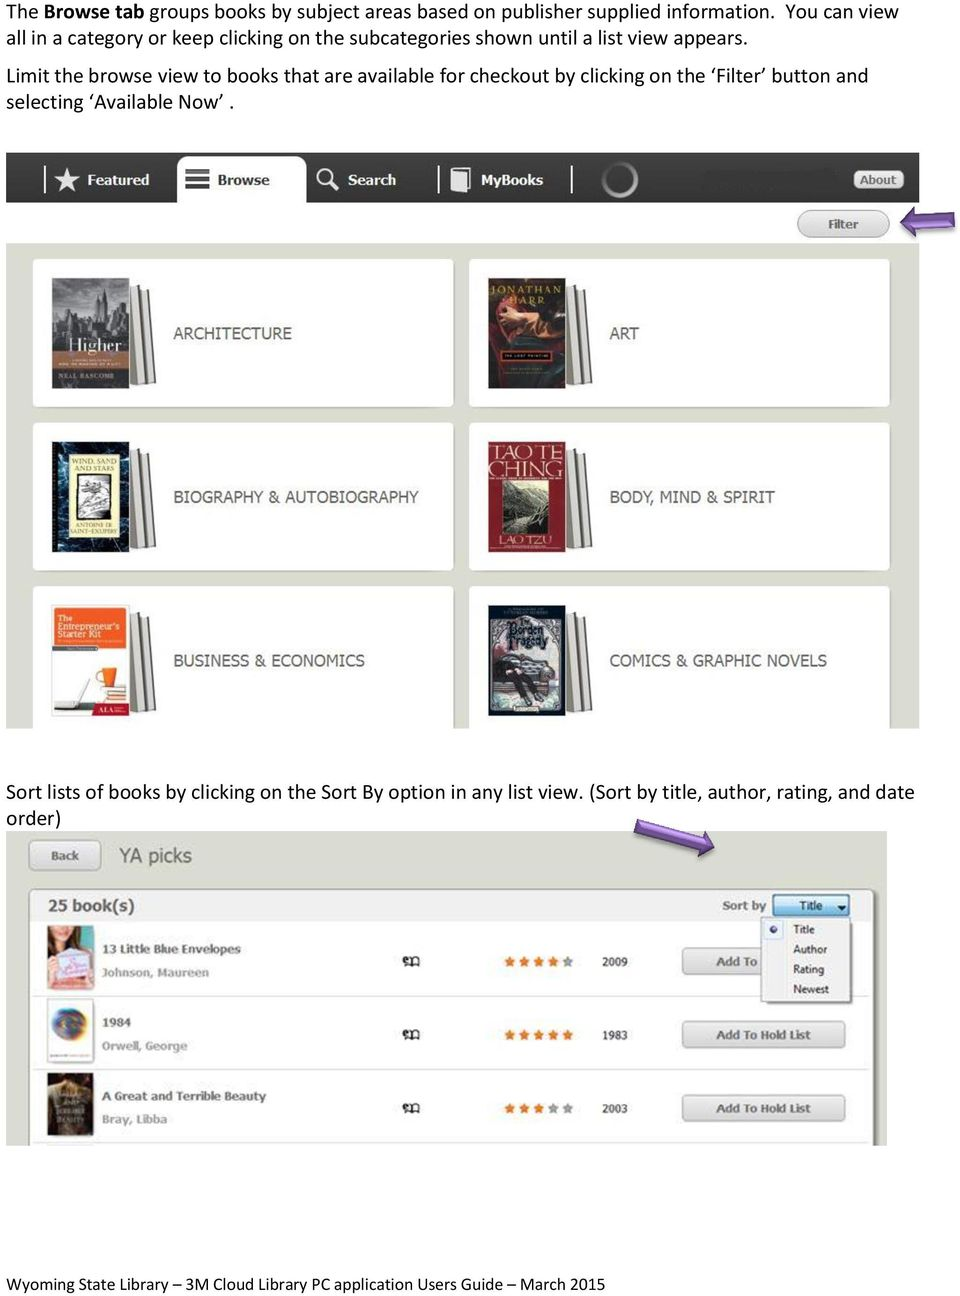 Limit the browse view to books that are available for checkout by clicking on the Filter button and